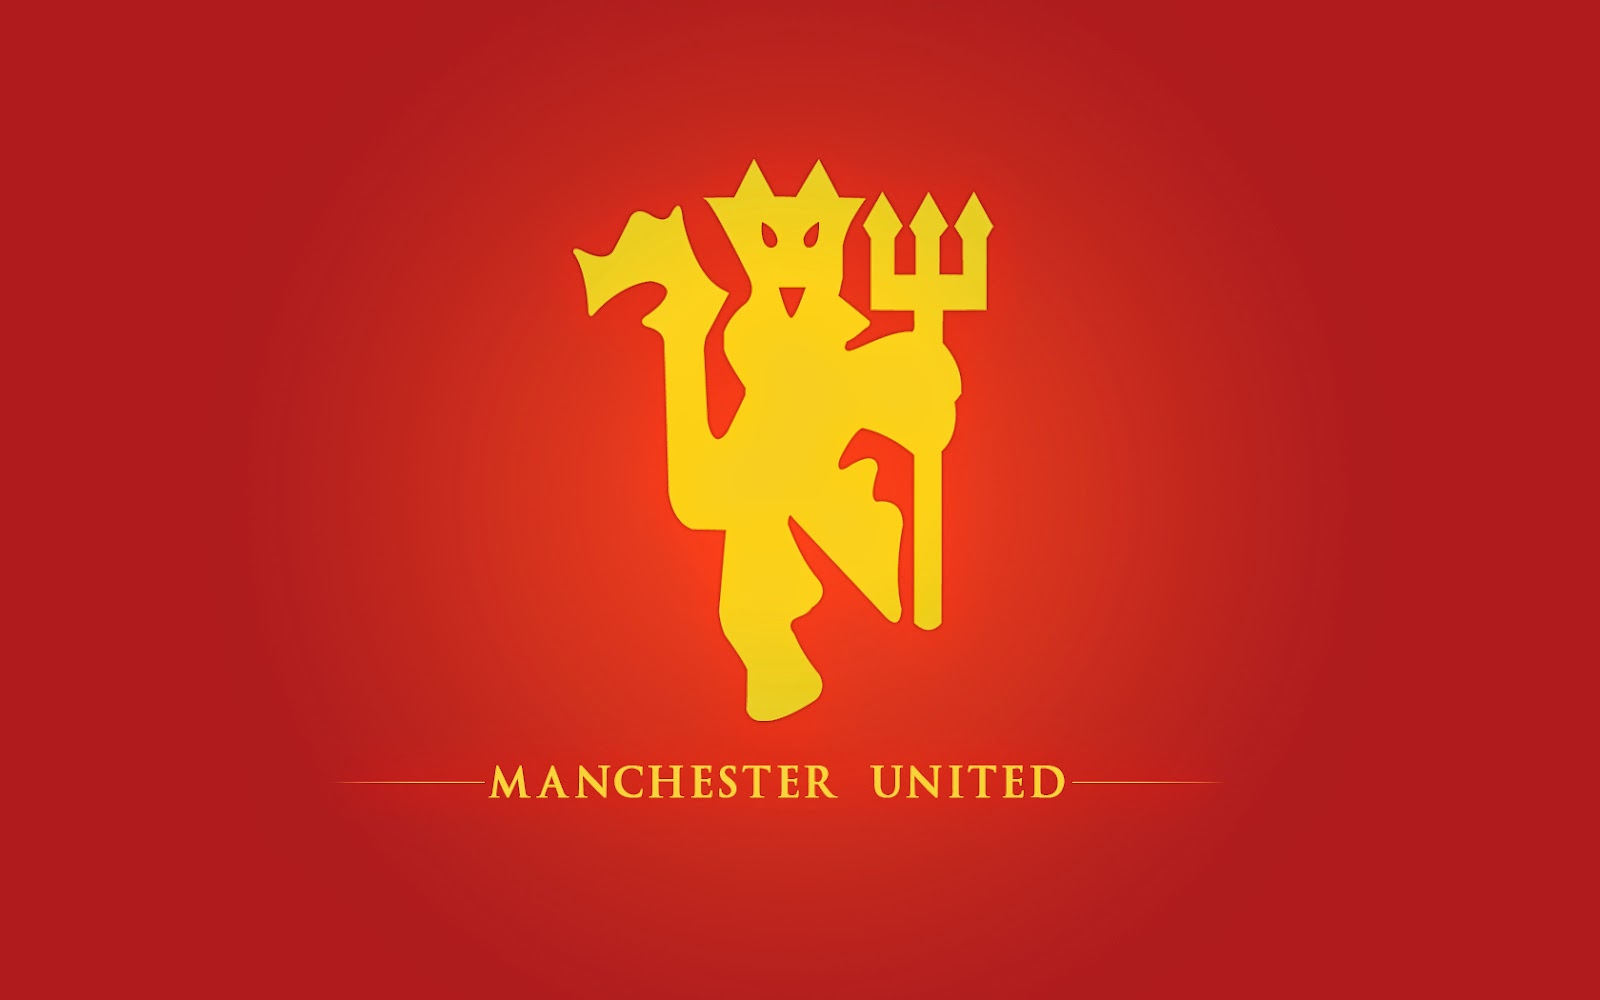 Manchester united logo wallpaper hd background download voltagebd Image collections